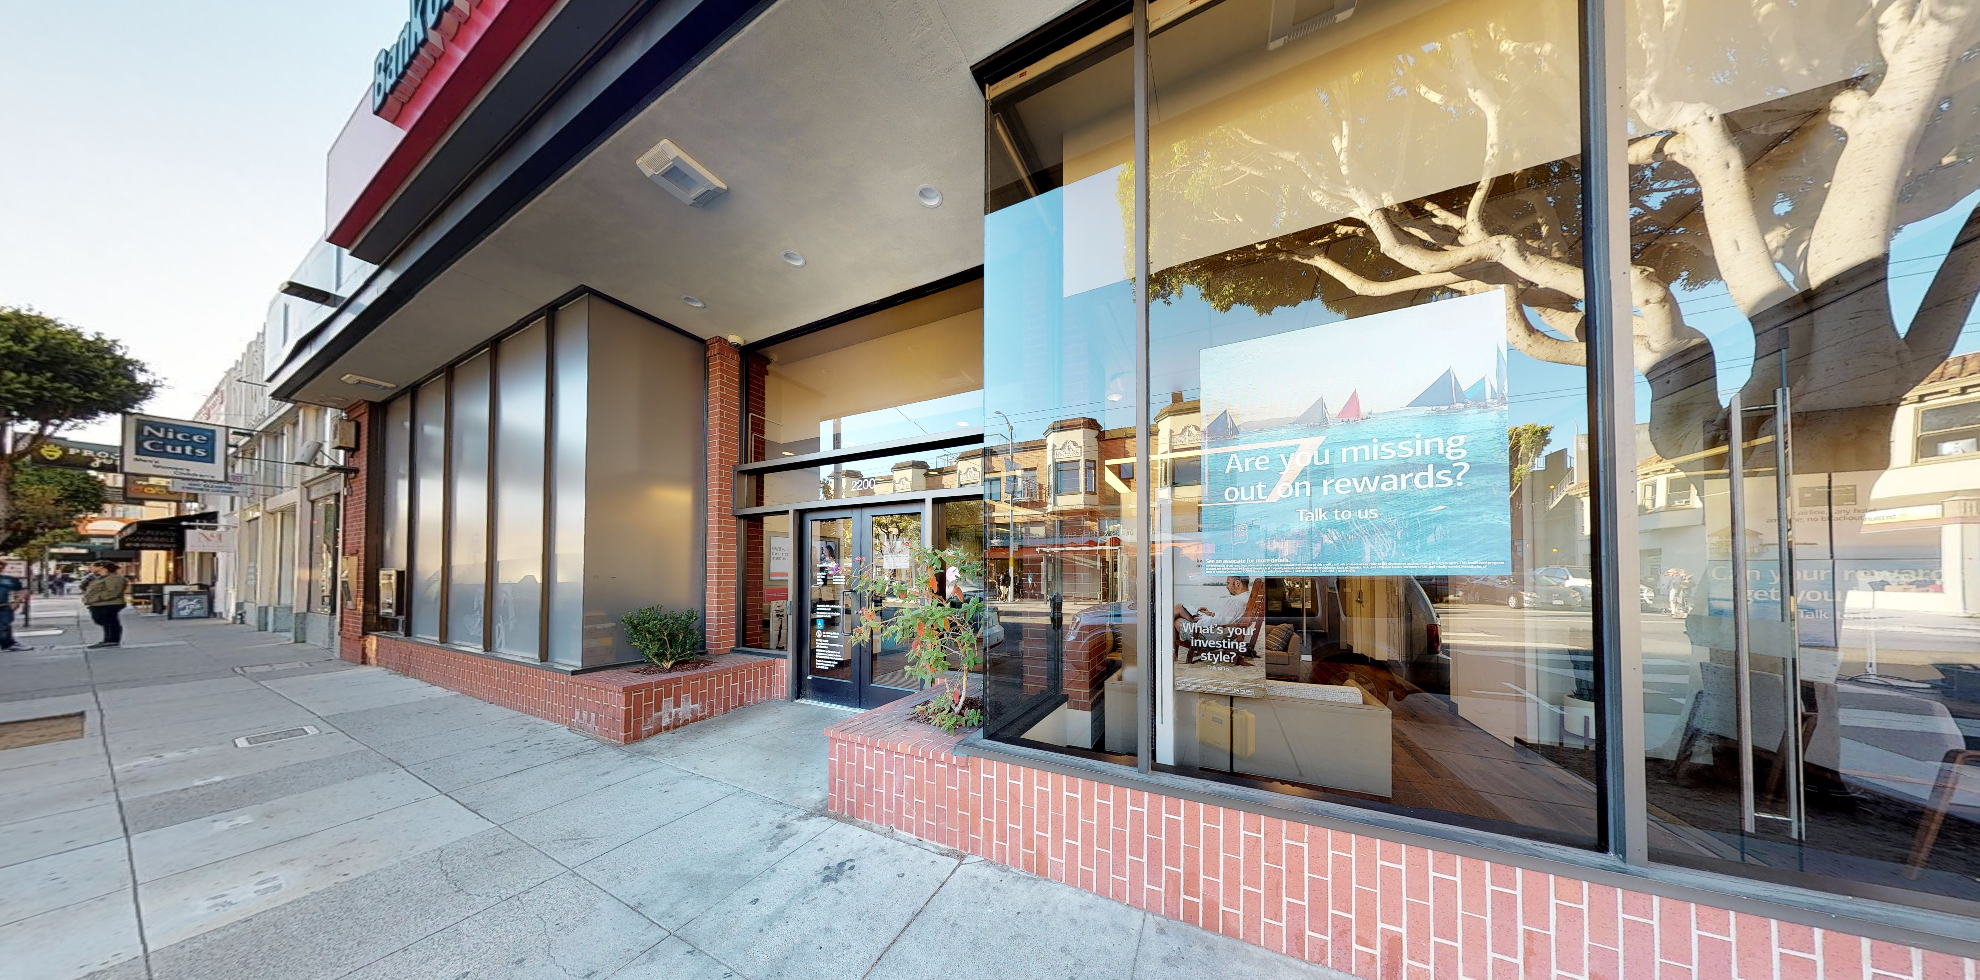 Bank of America financial center with walk-up ATM   2200 Chestnut St, San Francisco, CA 94123